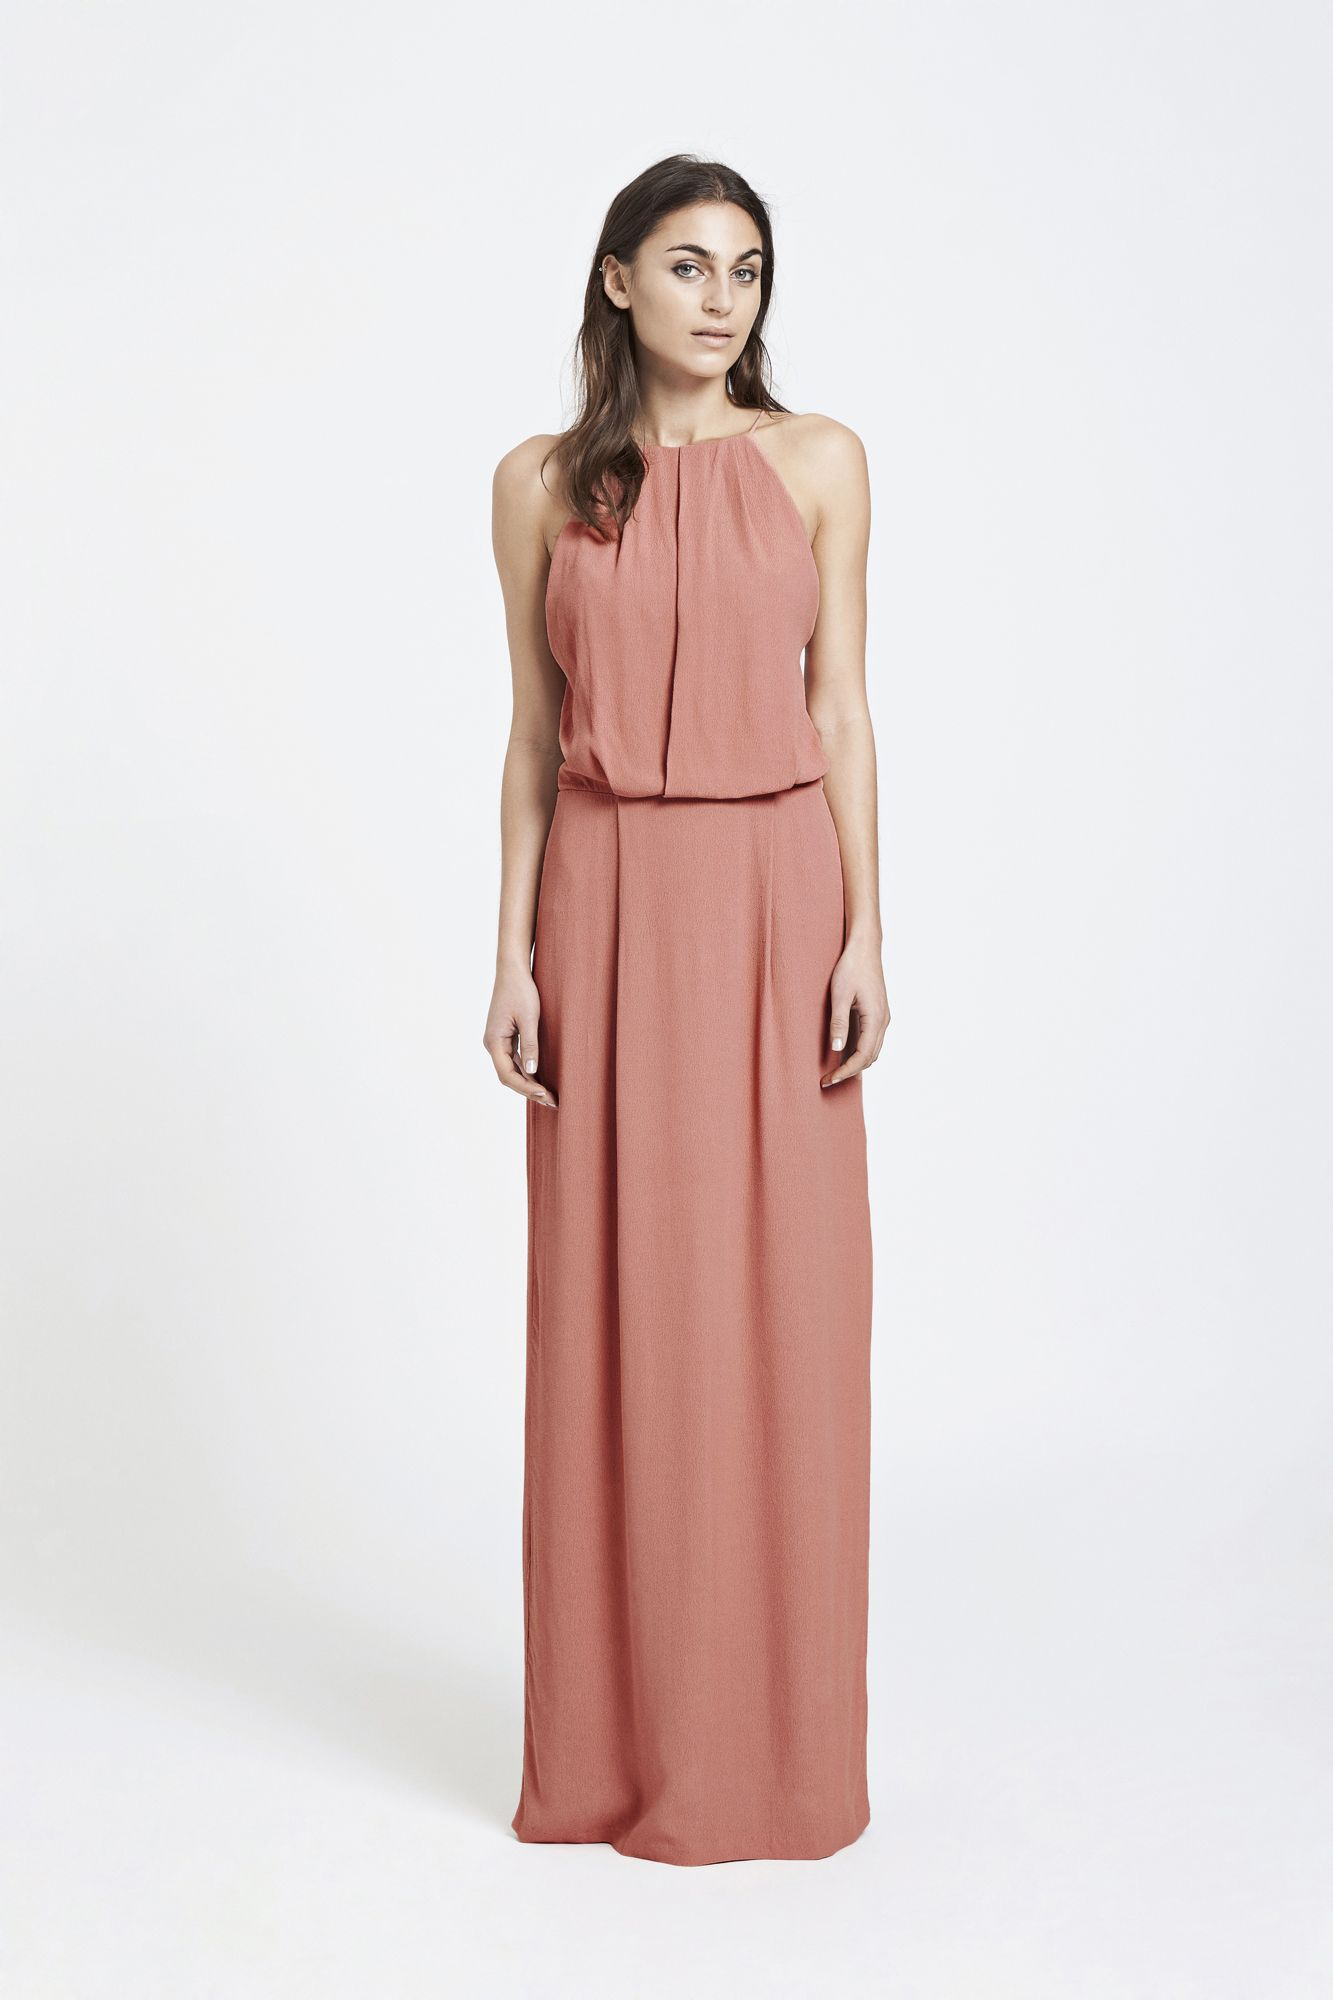 Samsoe Samsoe | Willow dress long